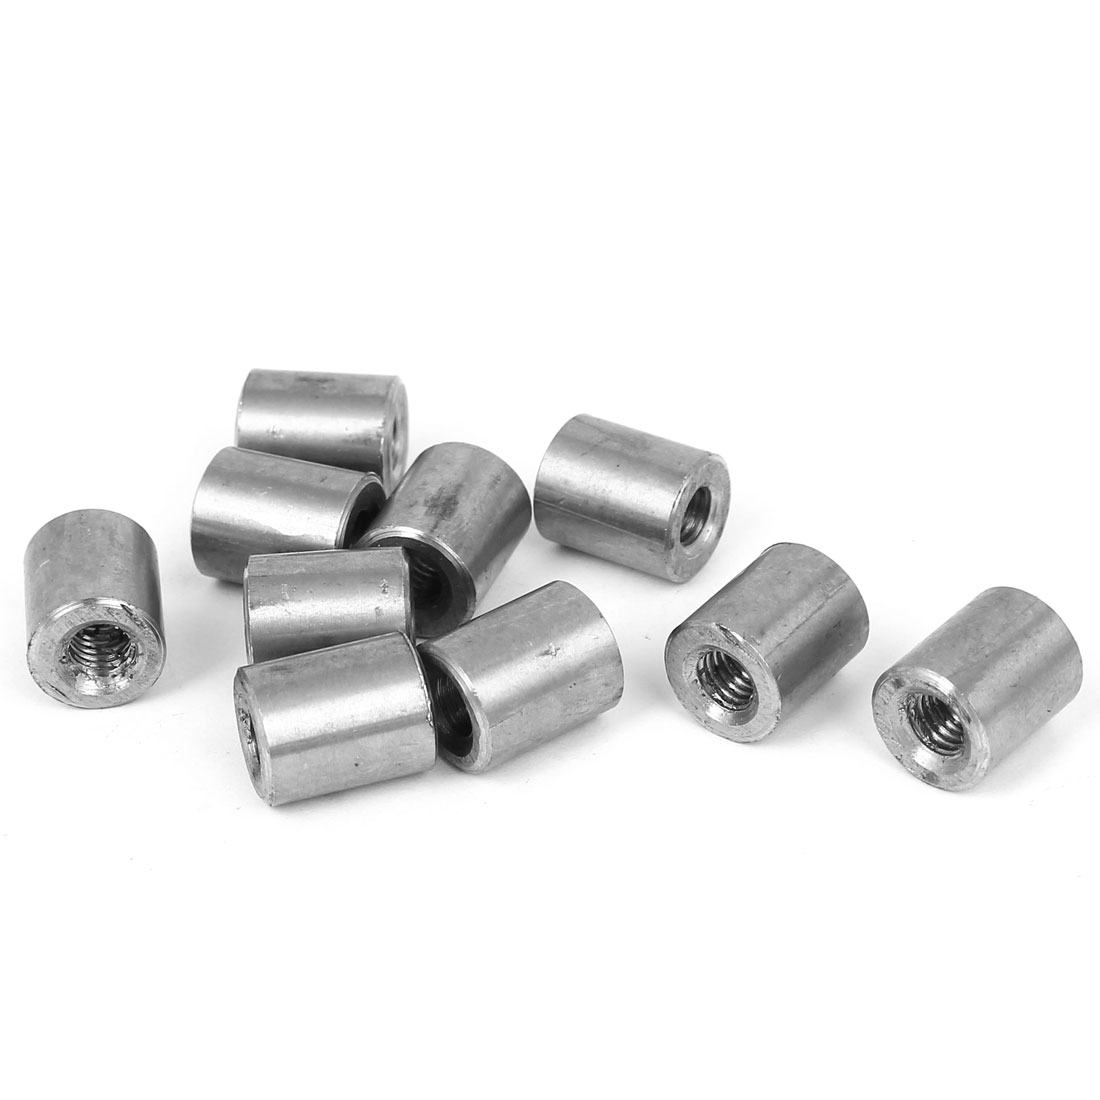 10pcs M5x12x10mm 304 Stainless Steel Threaded Round Coupling Connector Tube Nuts